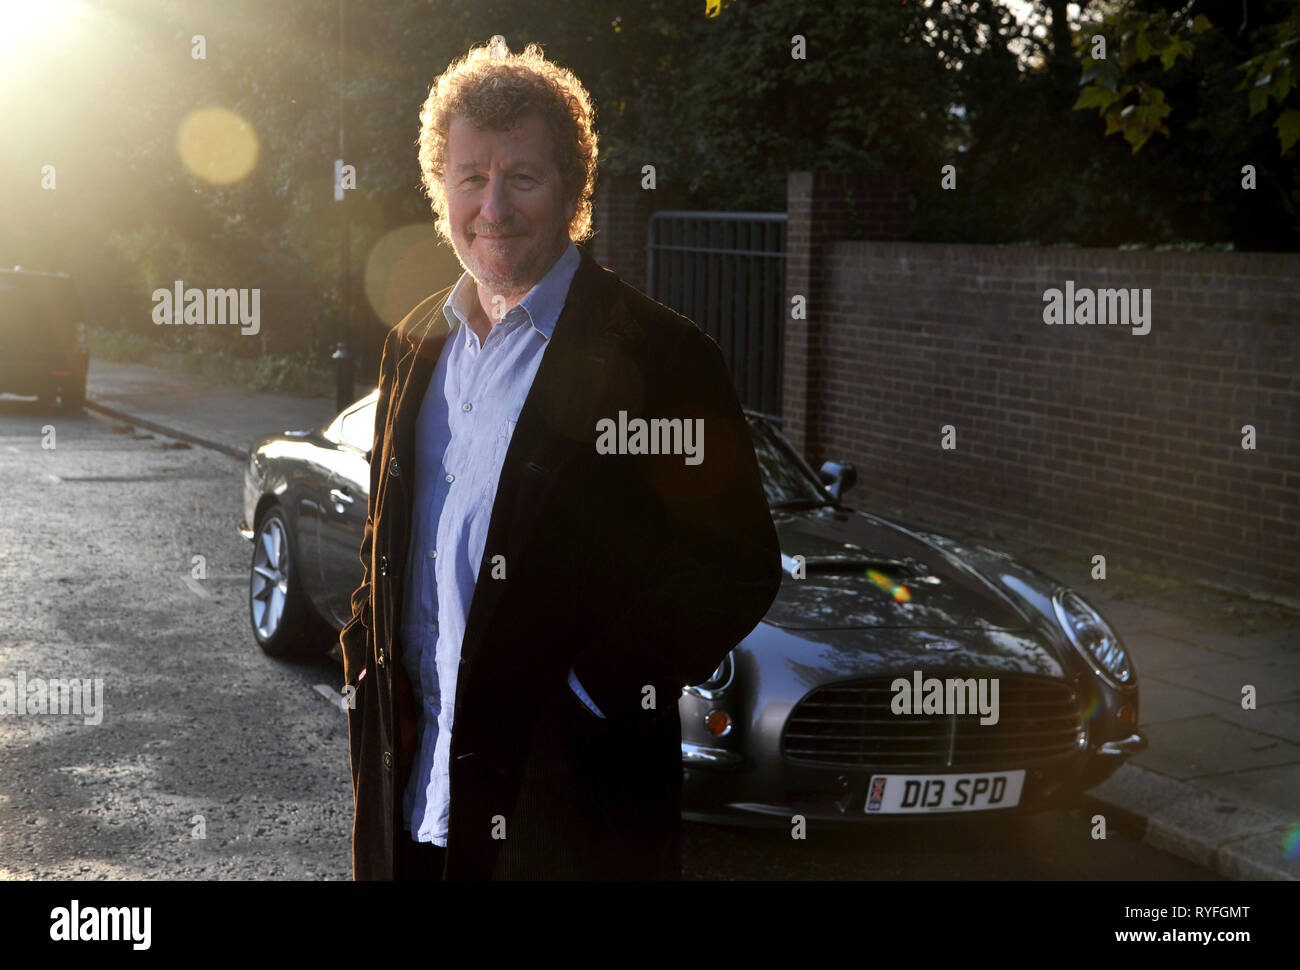 Author Sebastian Faulks with the David Brown Speedster car Stock Photo